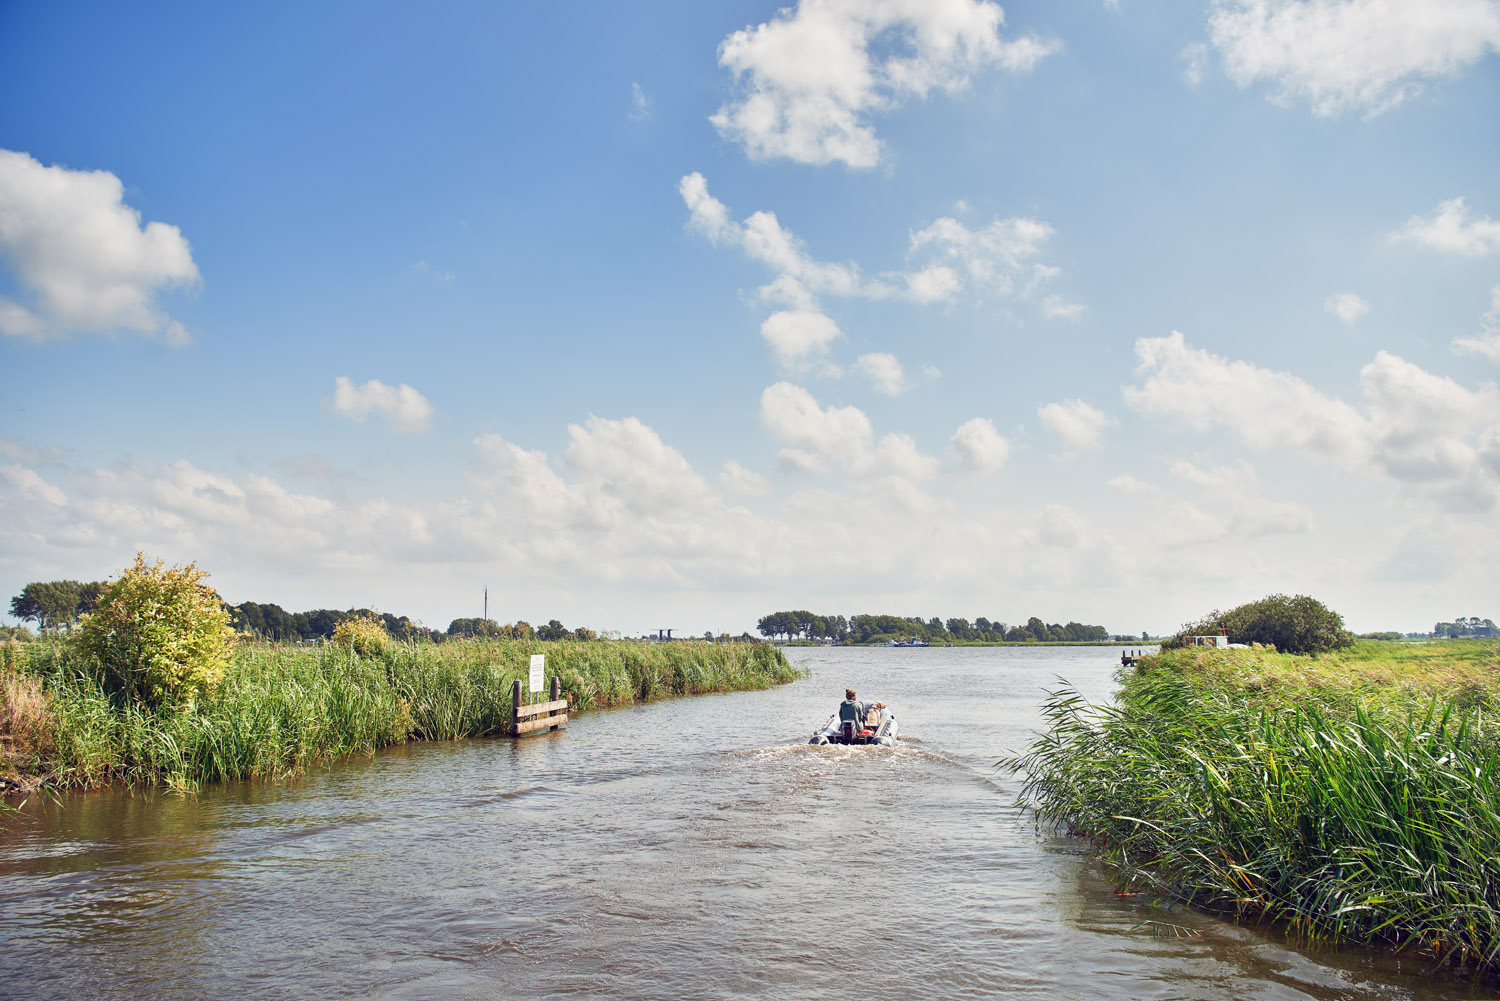 friese wateren in de woonomgeving